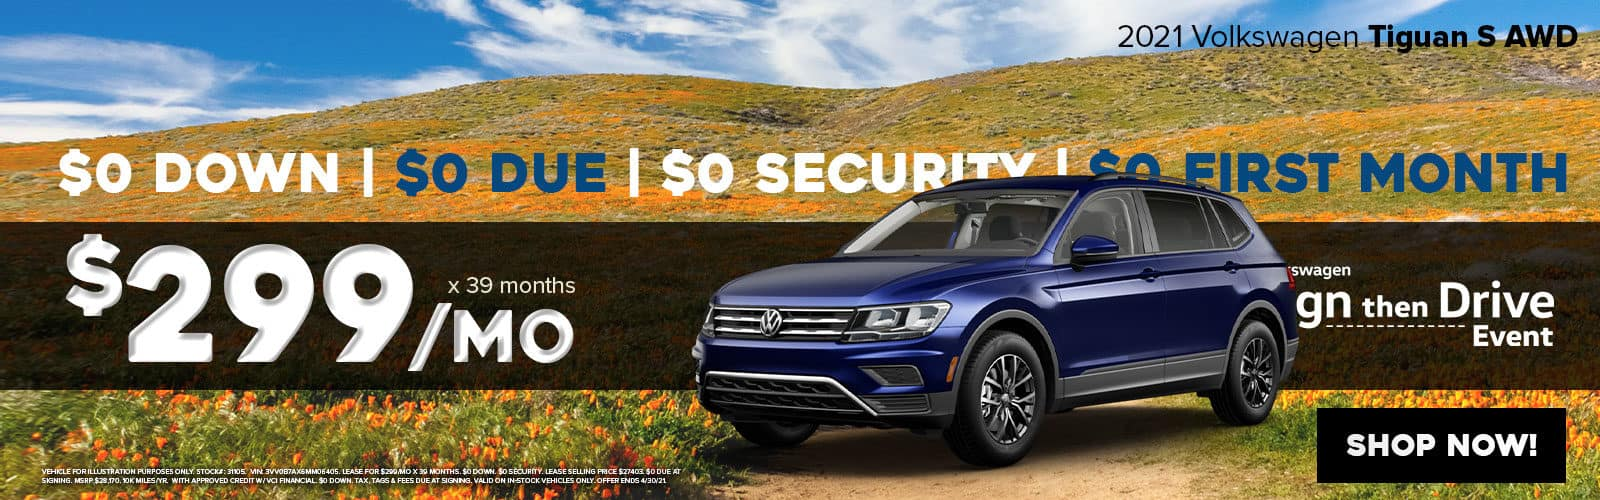 4_21_Wyoming_Valley_VW_Web_Banners_V2-2021-Tiguan